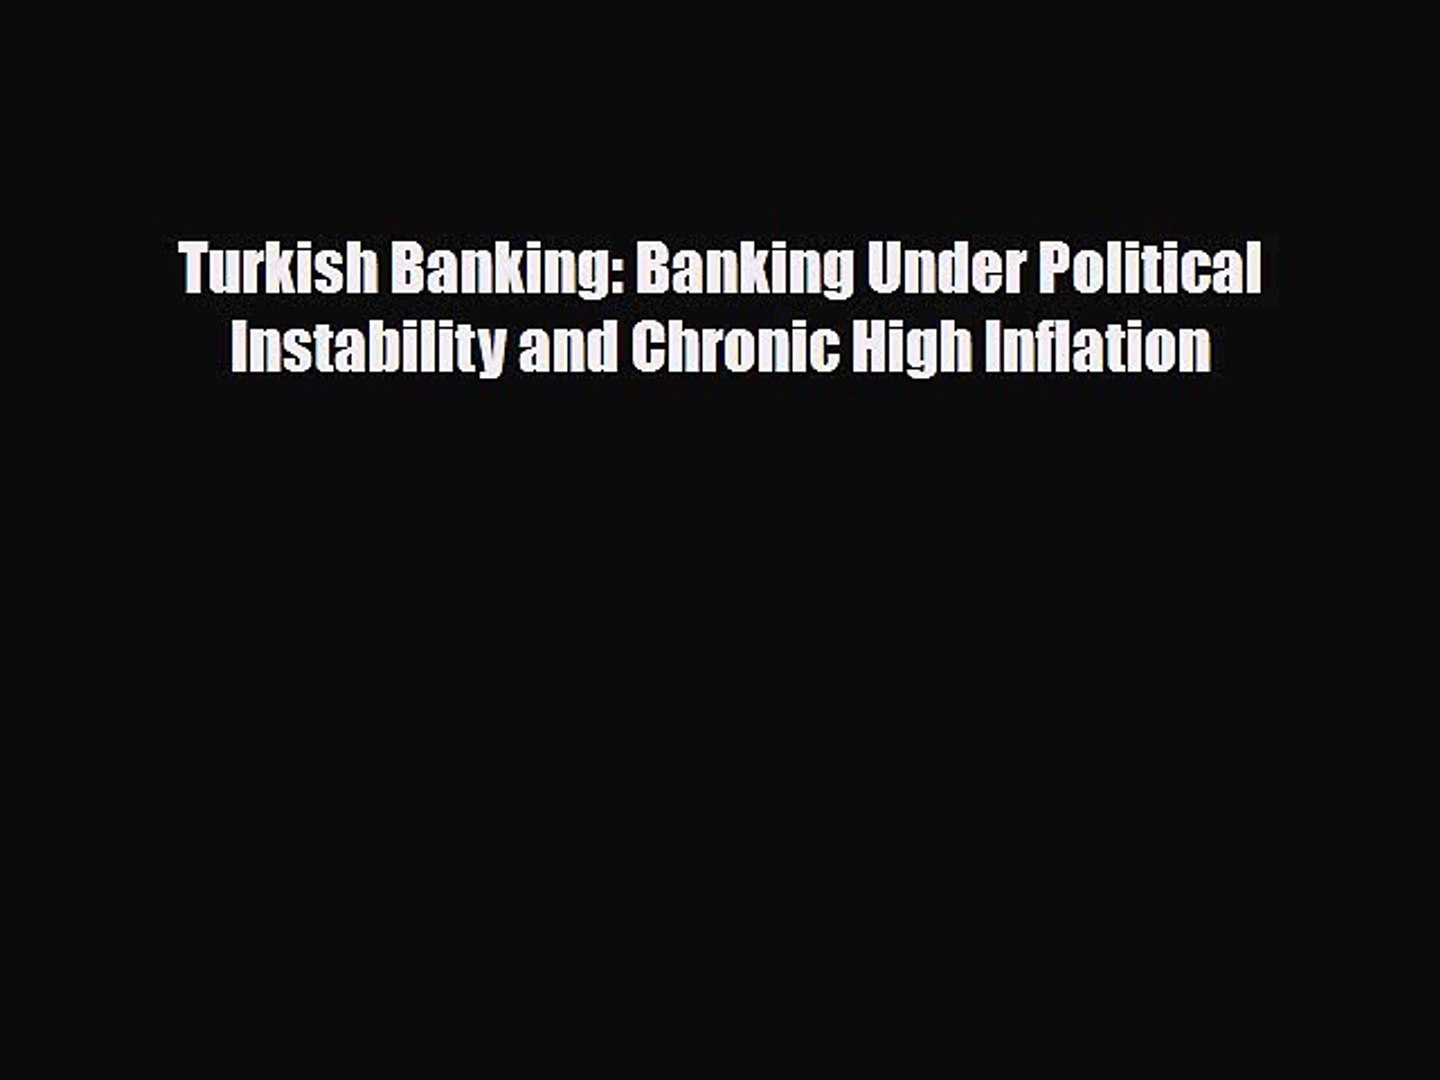 [PDF] Turkish Banking: Banking Under Political Instability and Chronic High Inflation Read